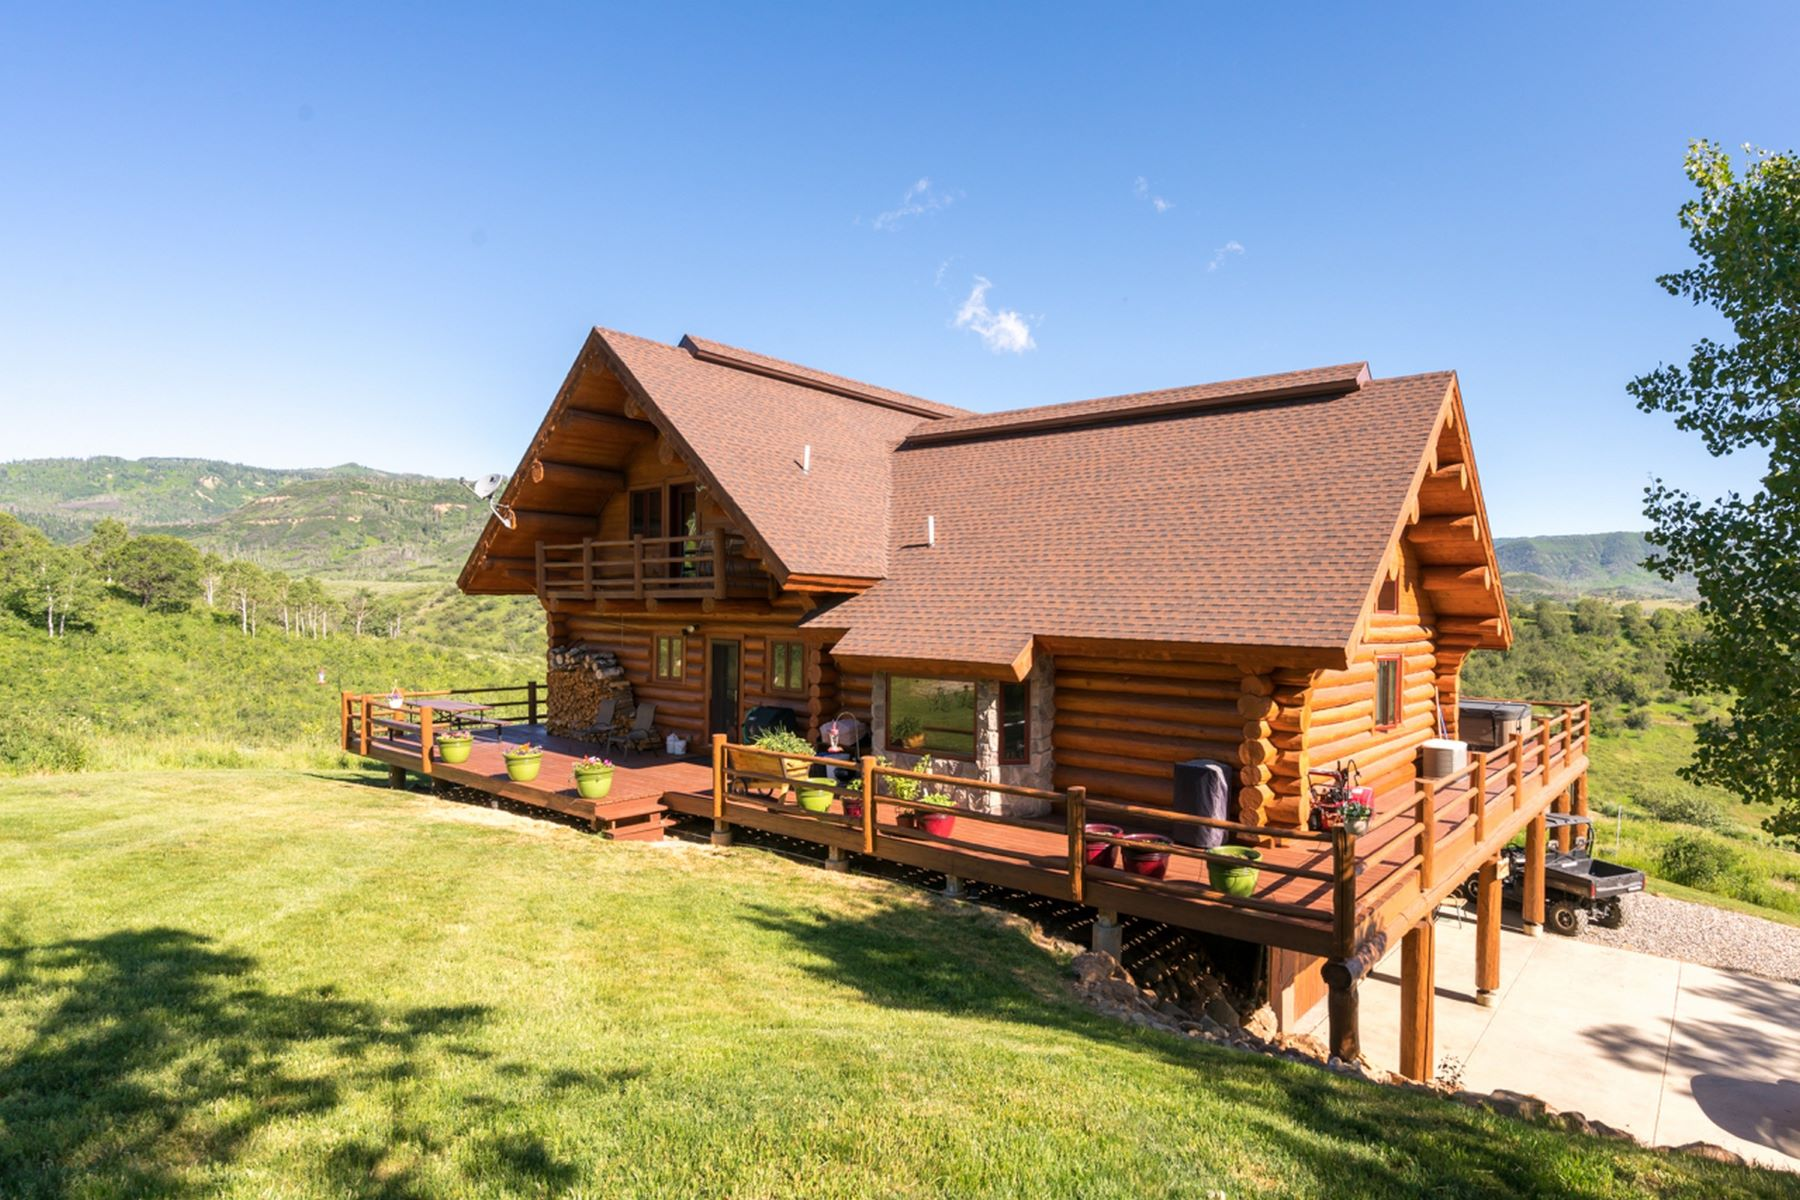 Single Family Home for Sale at Epic Rocky Mountain Log Home 47505 County Road 52W Steamboat Springs, Colorado 80487 United States